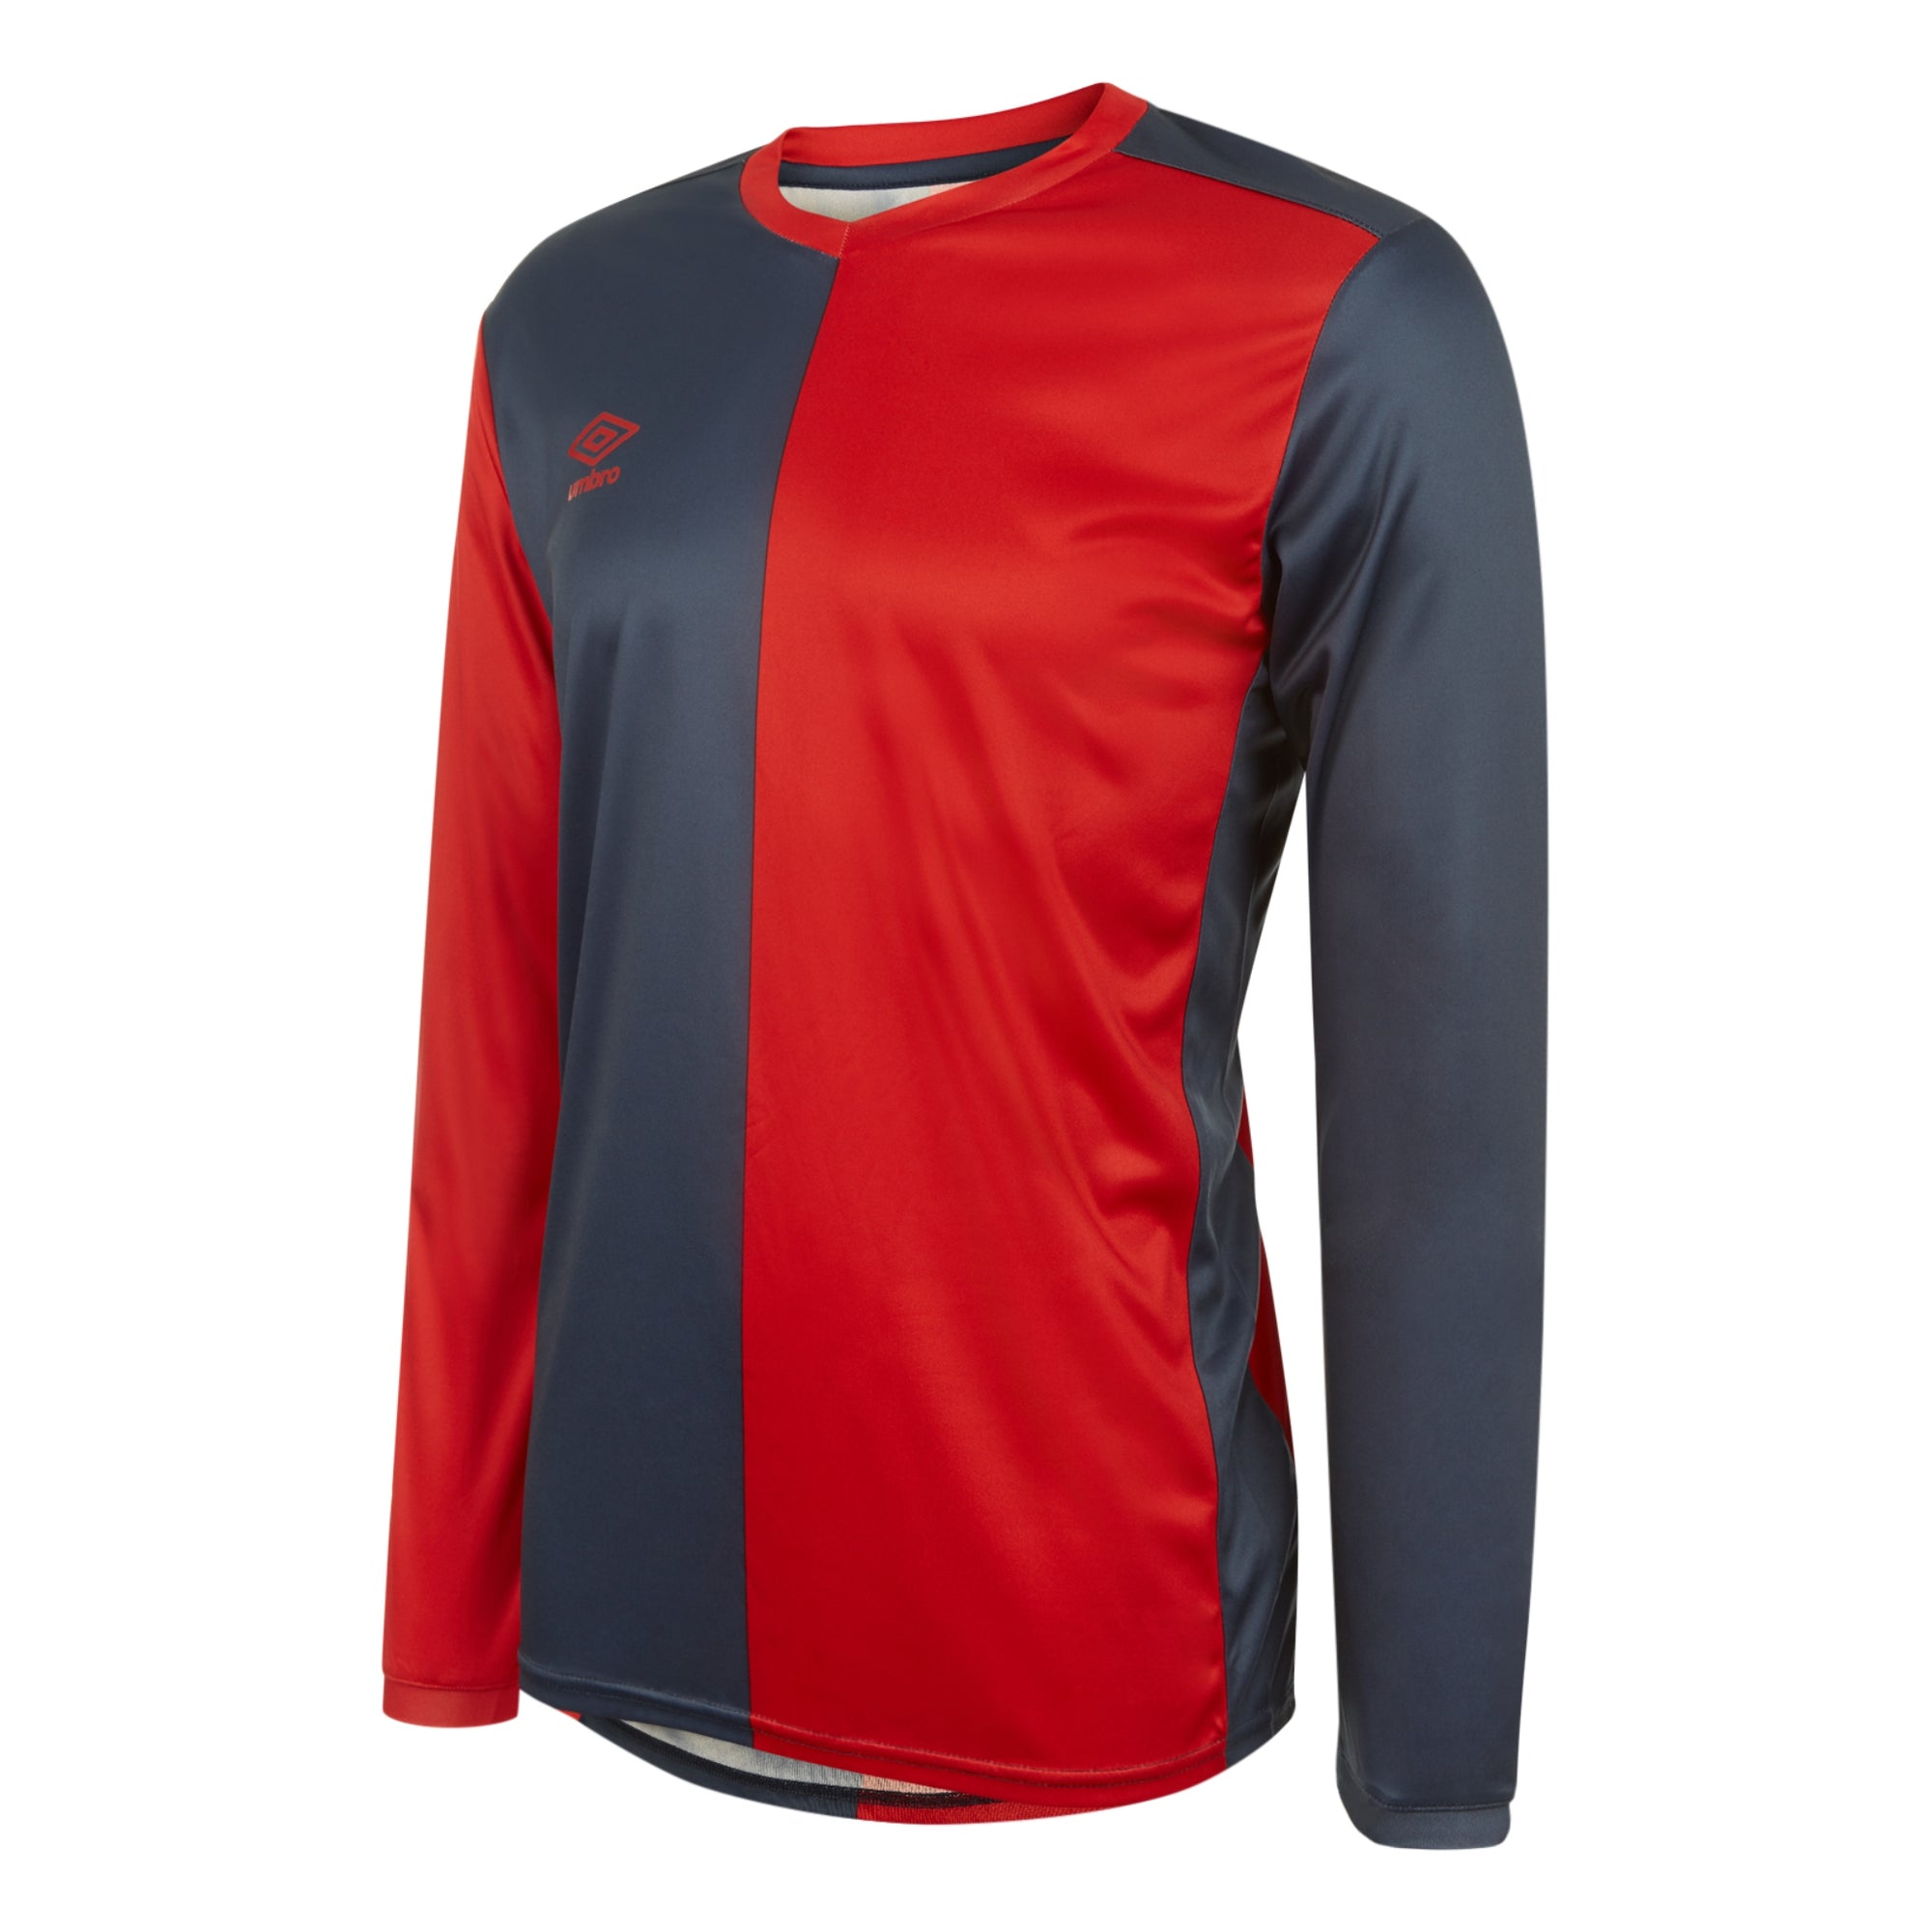 Umbro 50/50 LS Jersey - Vermillion/Dark Navy